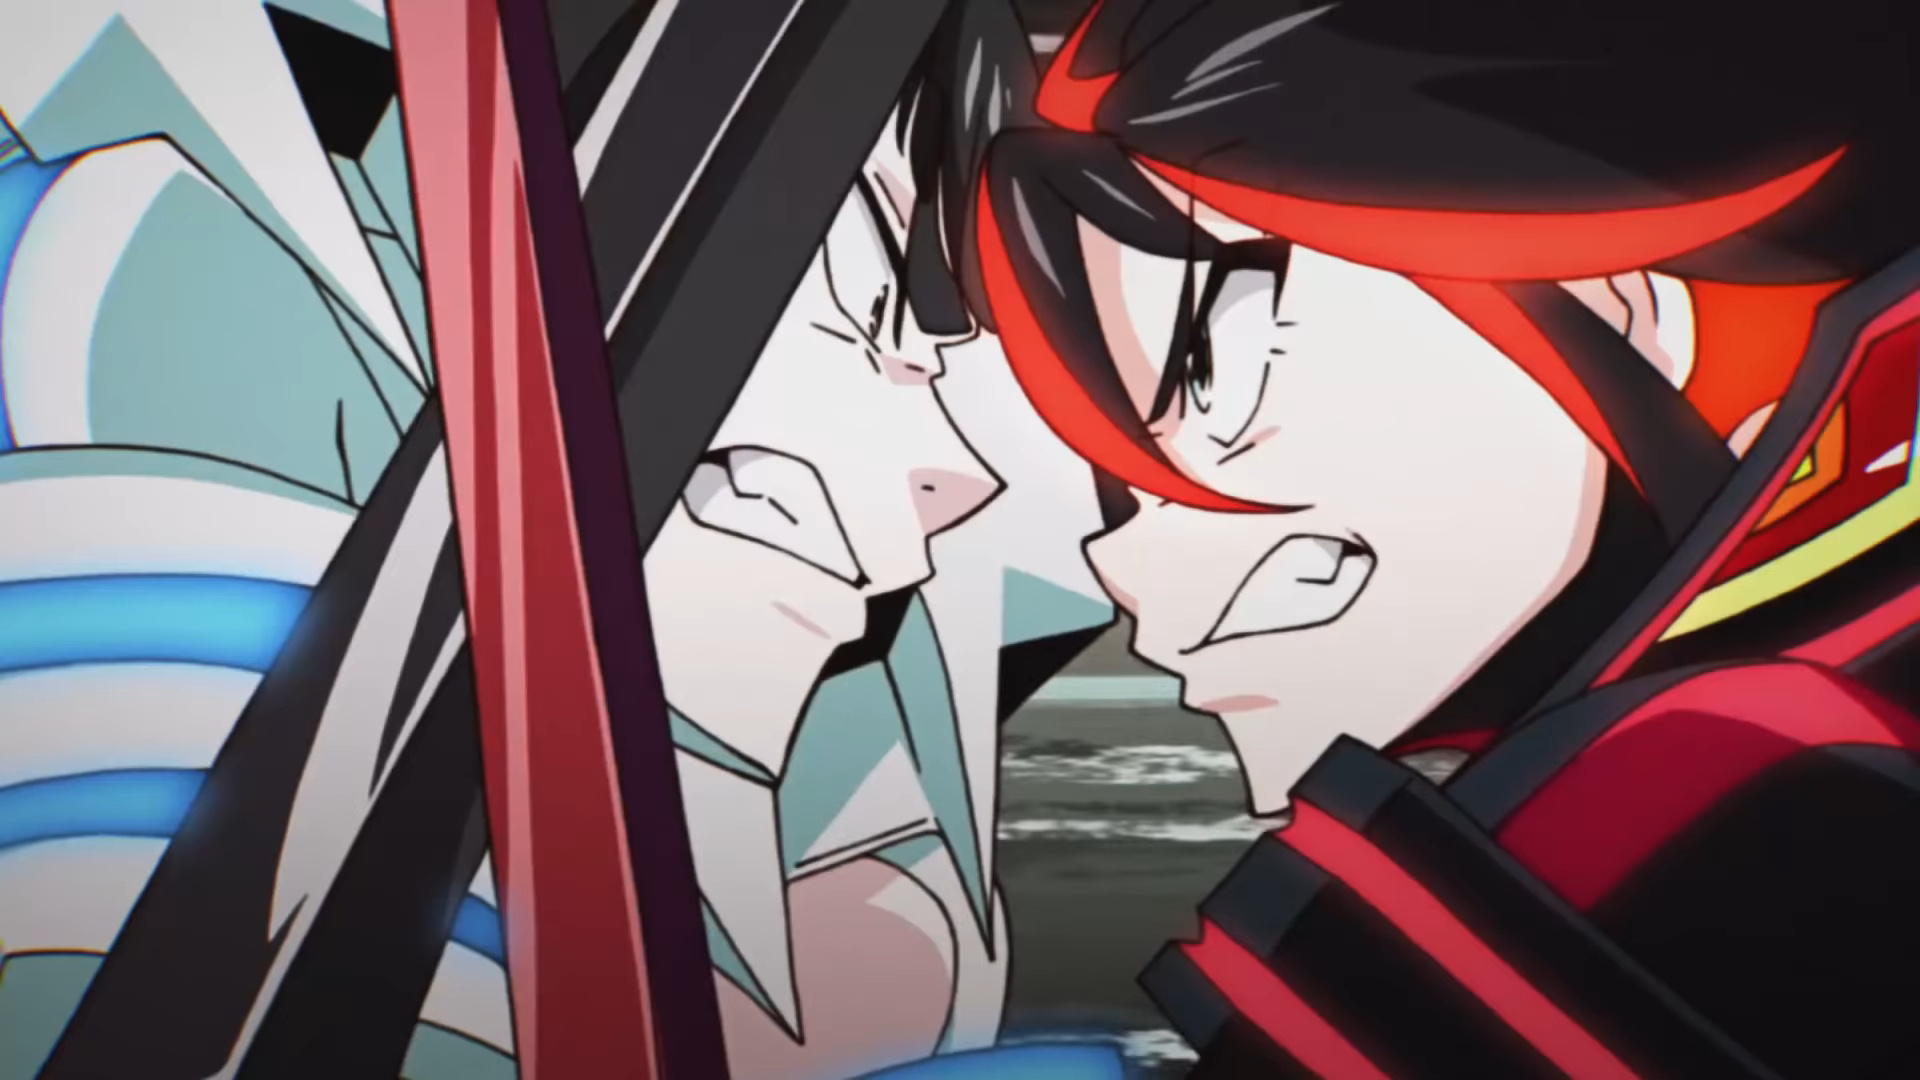 Demo Kill La Kill If Or Buy The Full Game Later This Month